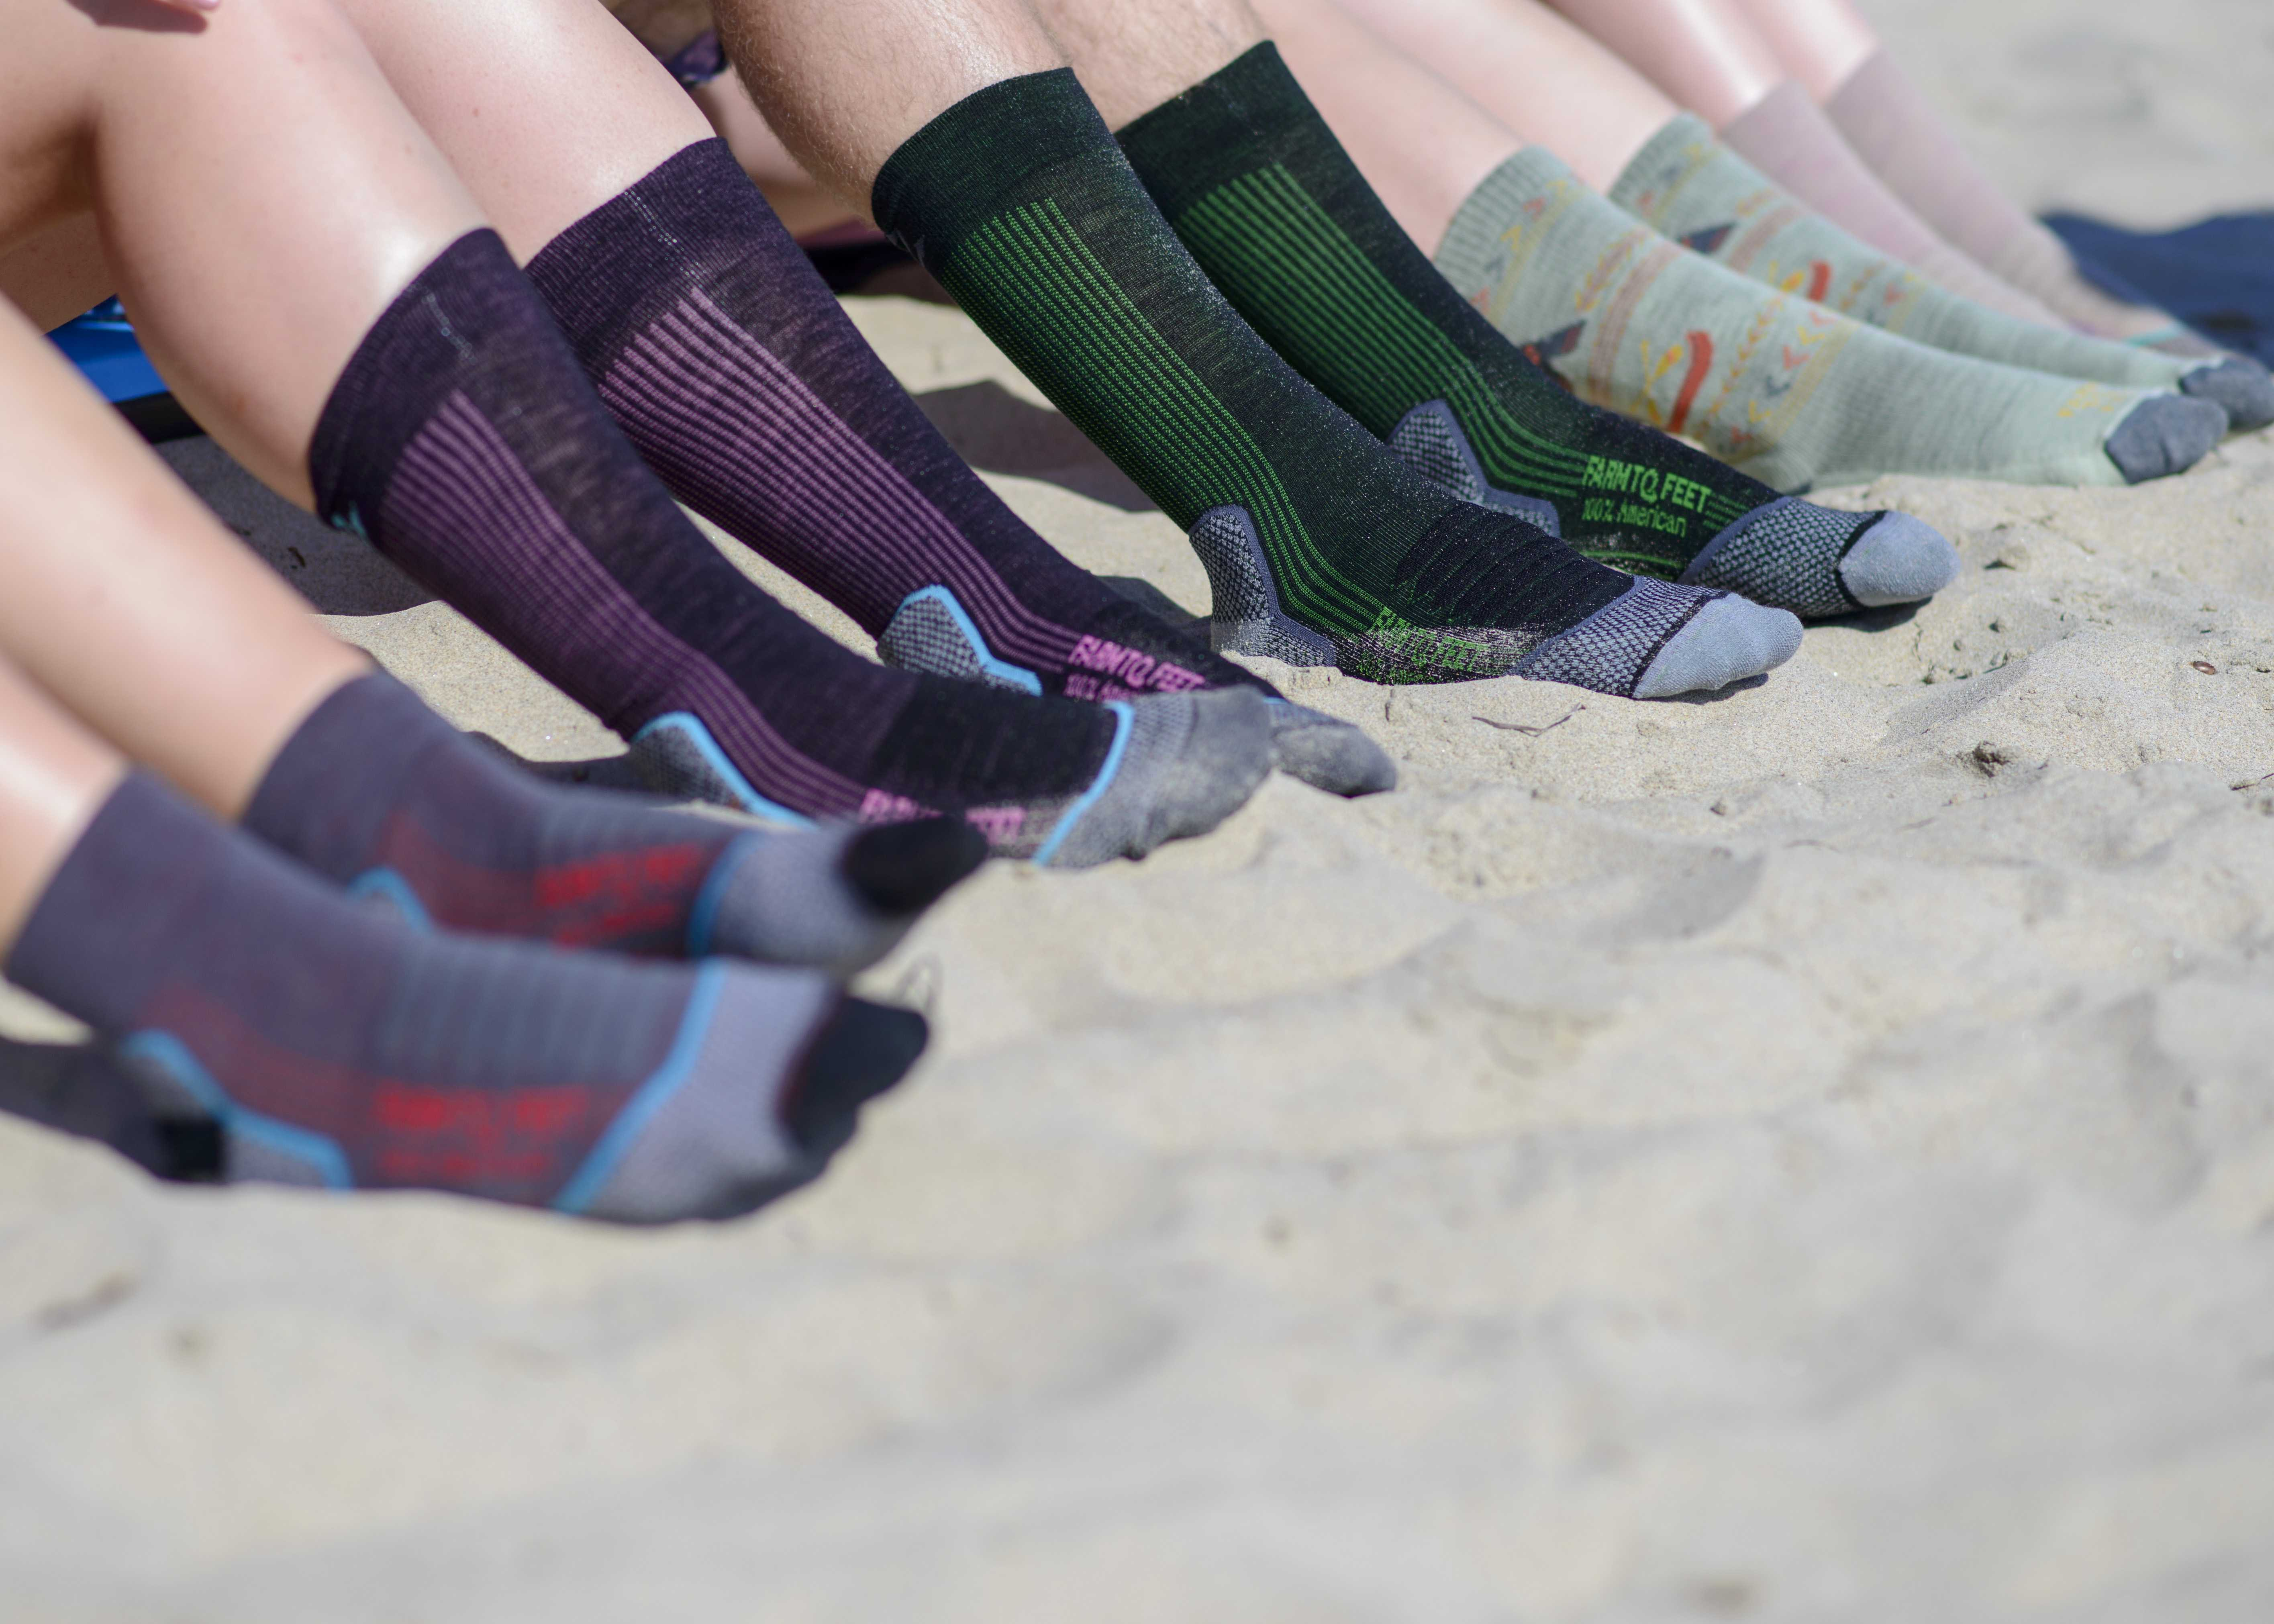 Full assortment of both casual and athletic socks produced by Farm to Feet